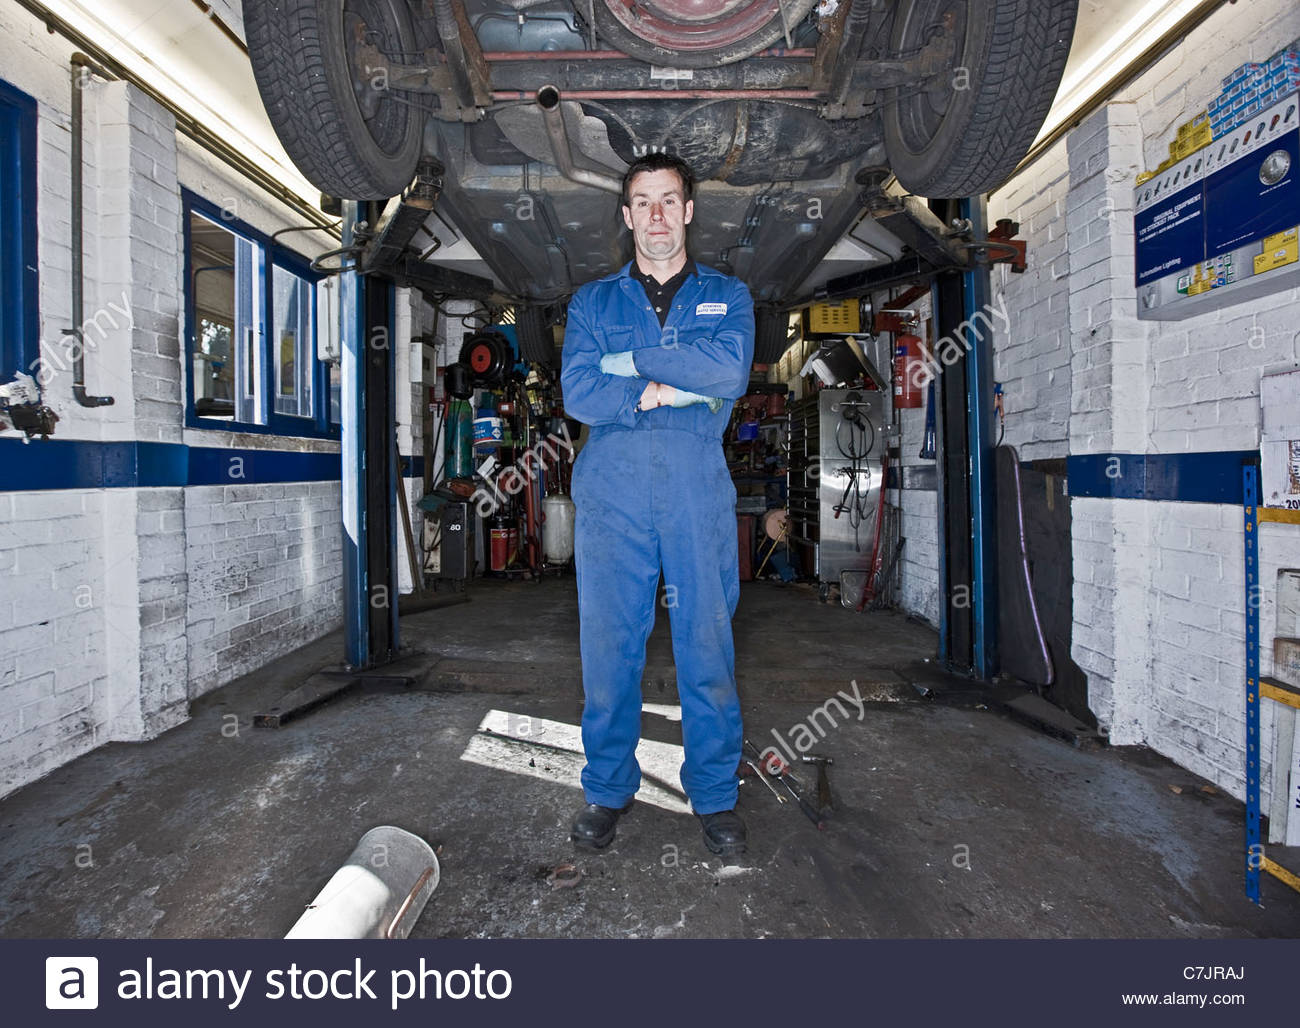 Mechanic standing under lifted car - Stock Image